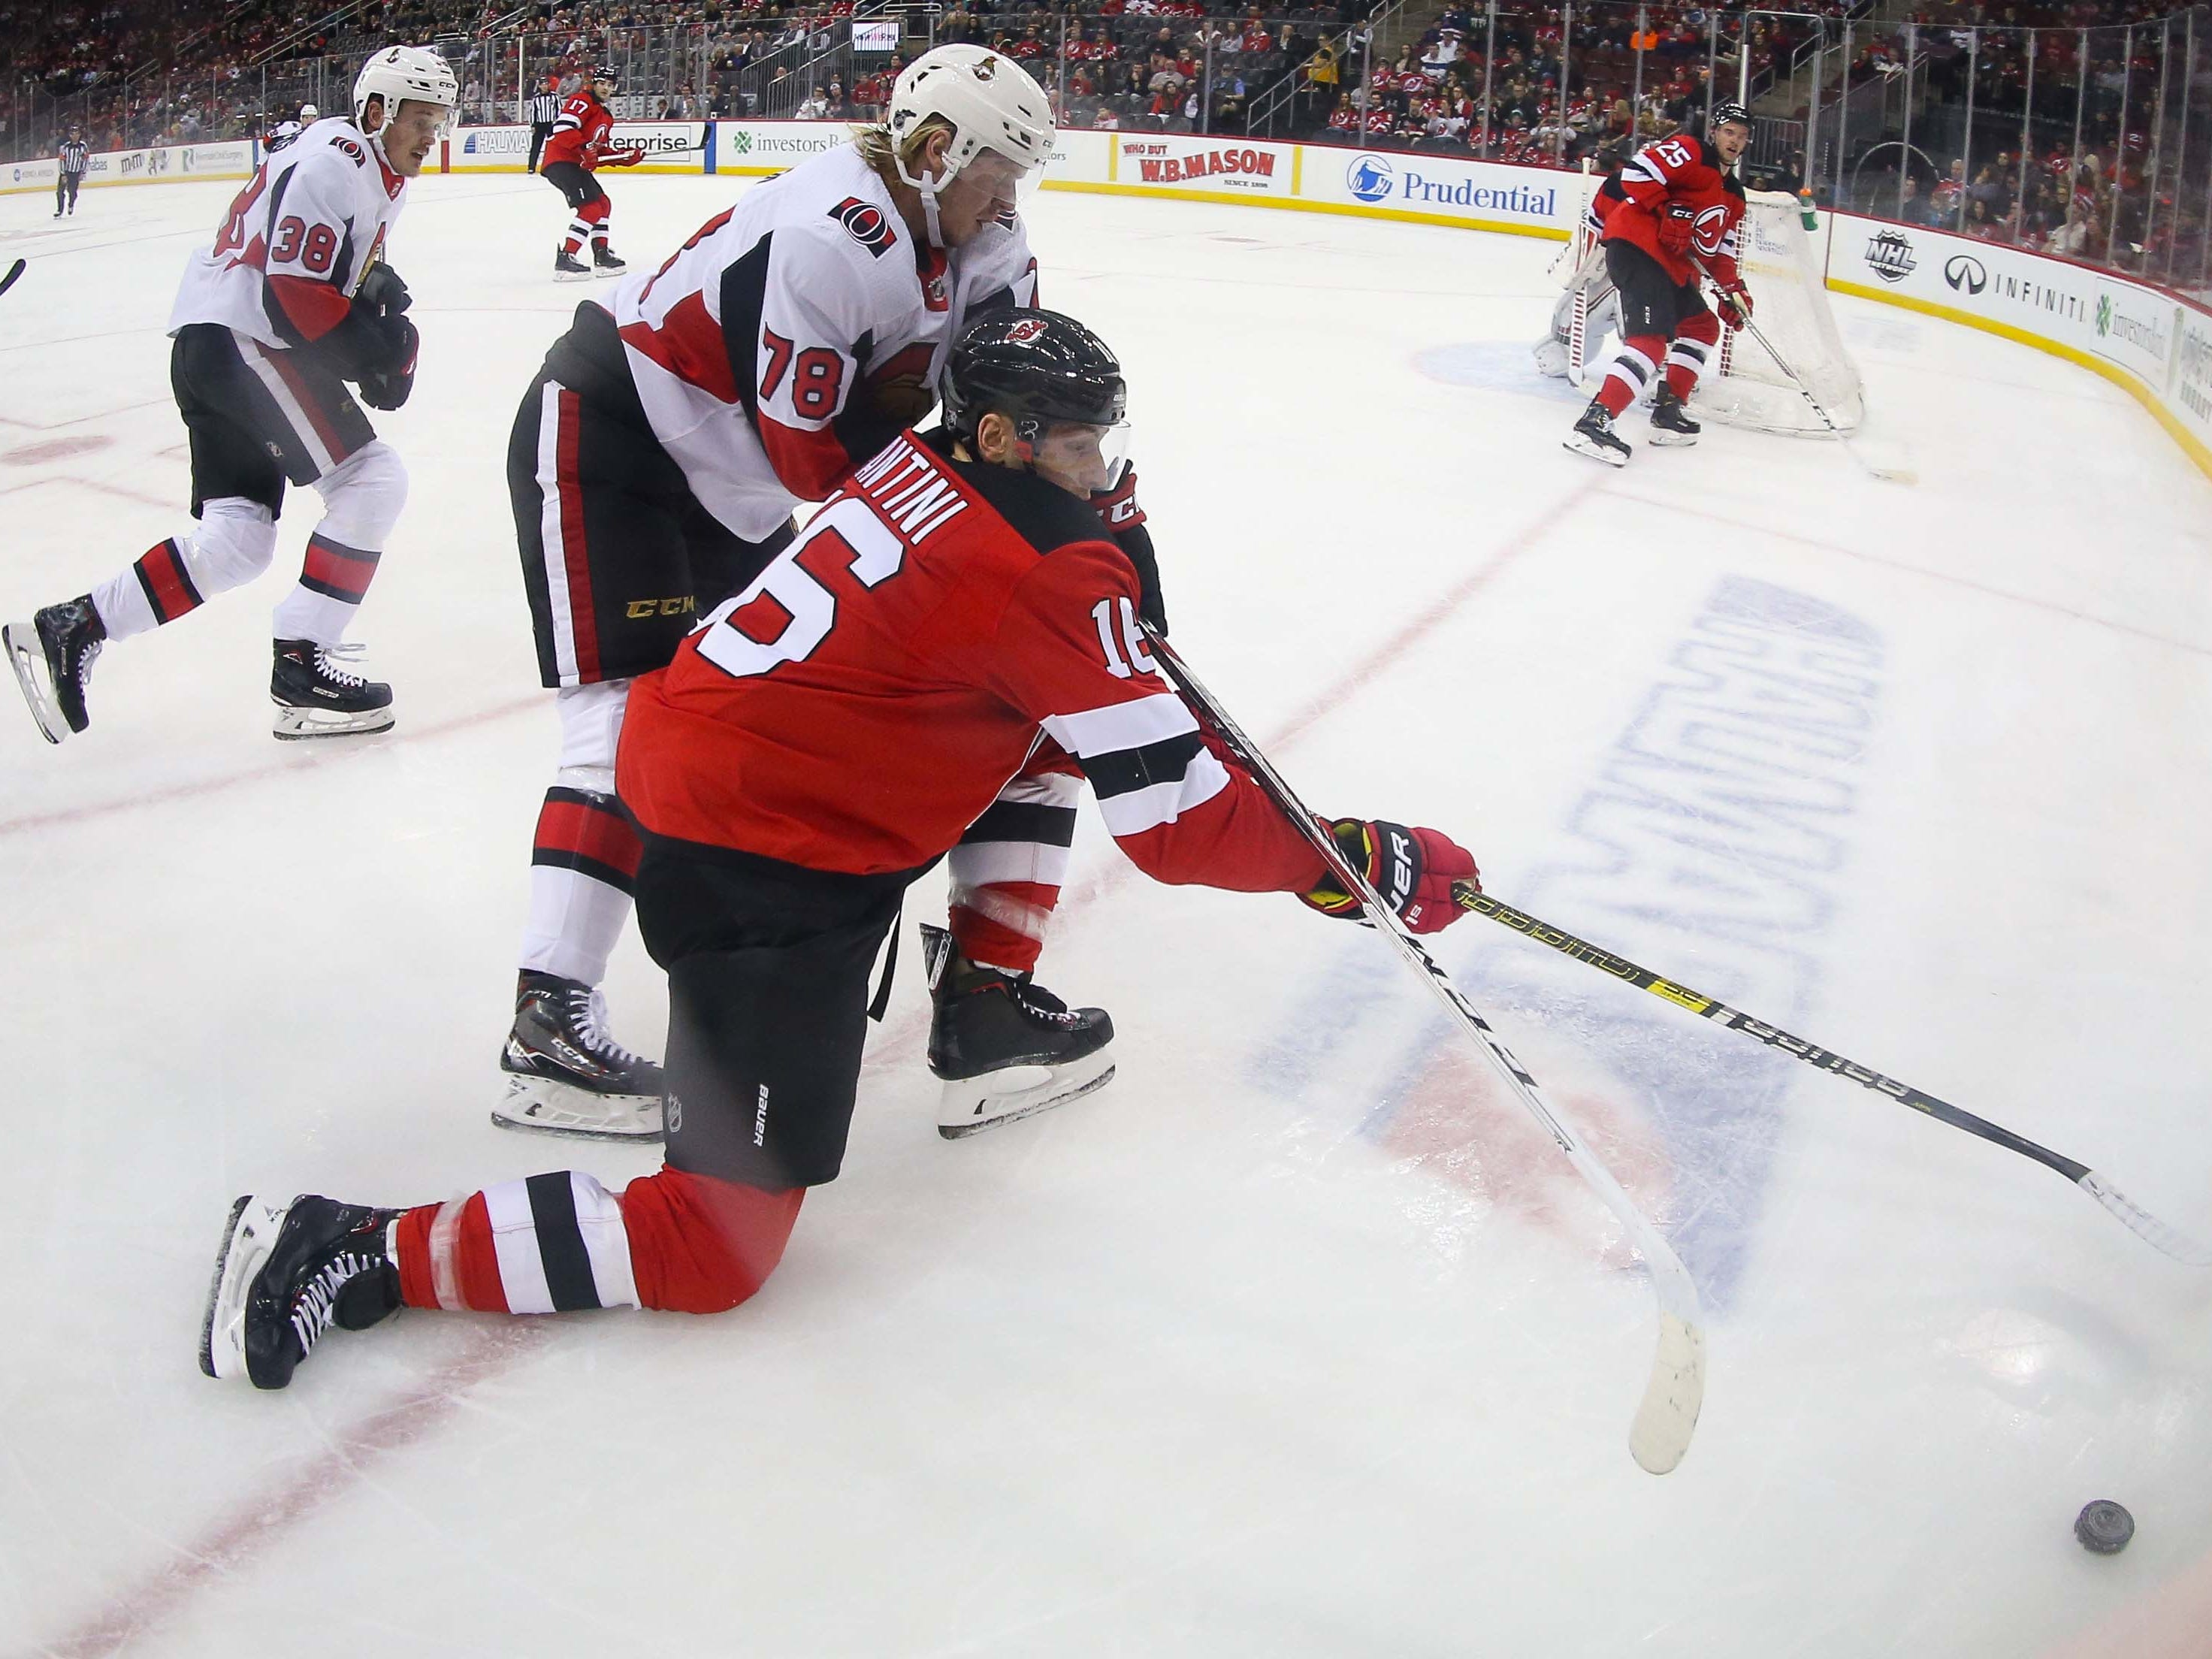 Feb 21, 2019; Newark, NJ, USA; New Jersey Devils defenseman Steven Santini (16) and Ottawa Senators center Filip Chlapik (78) battle for the puck during the first period at Prudential Center.